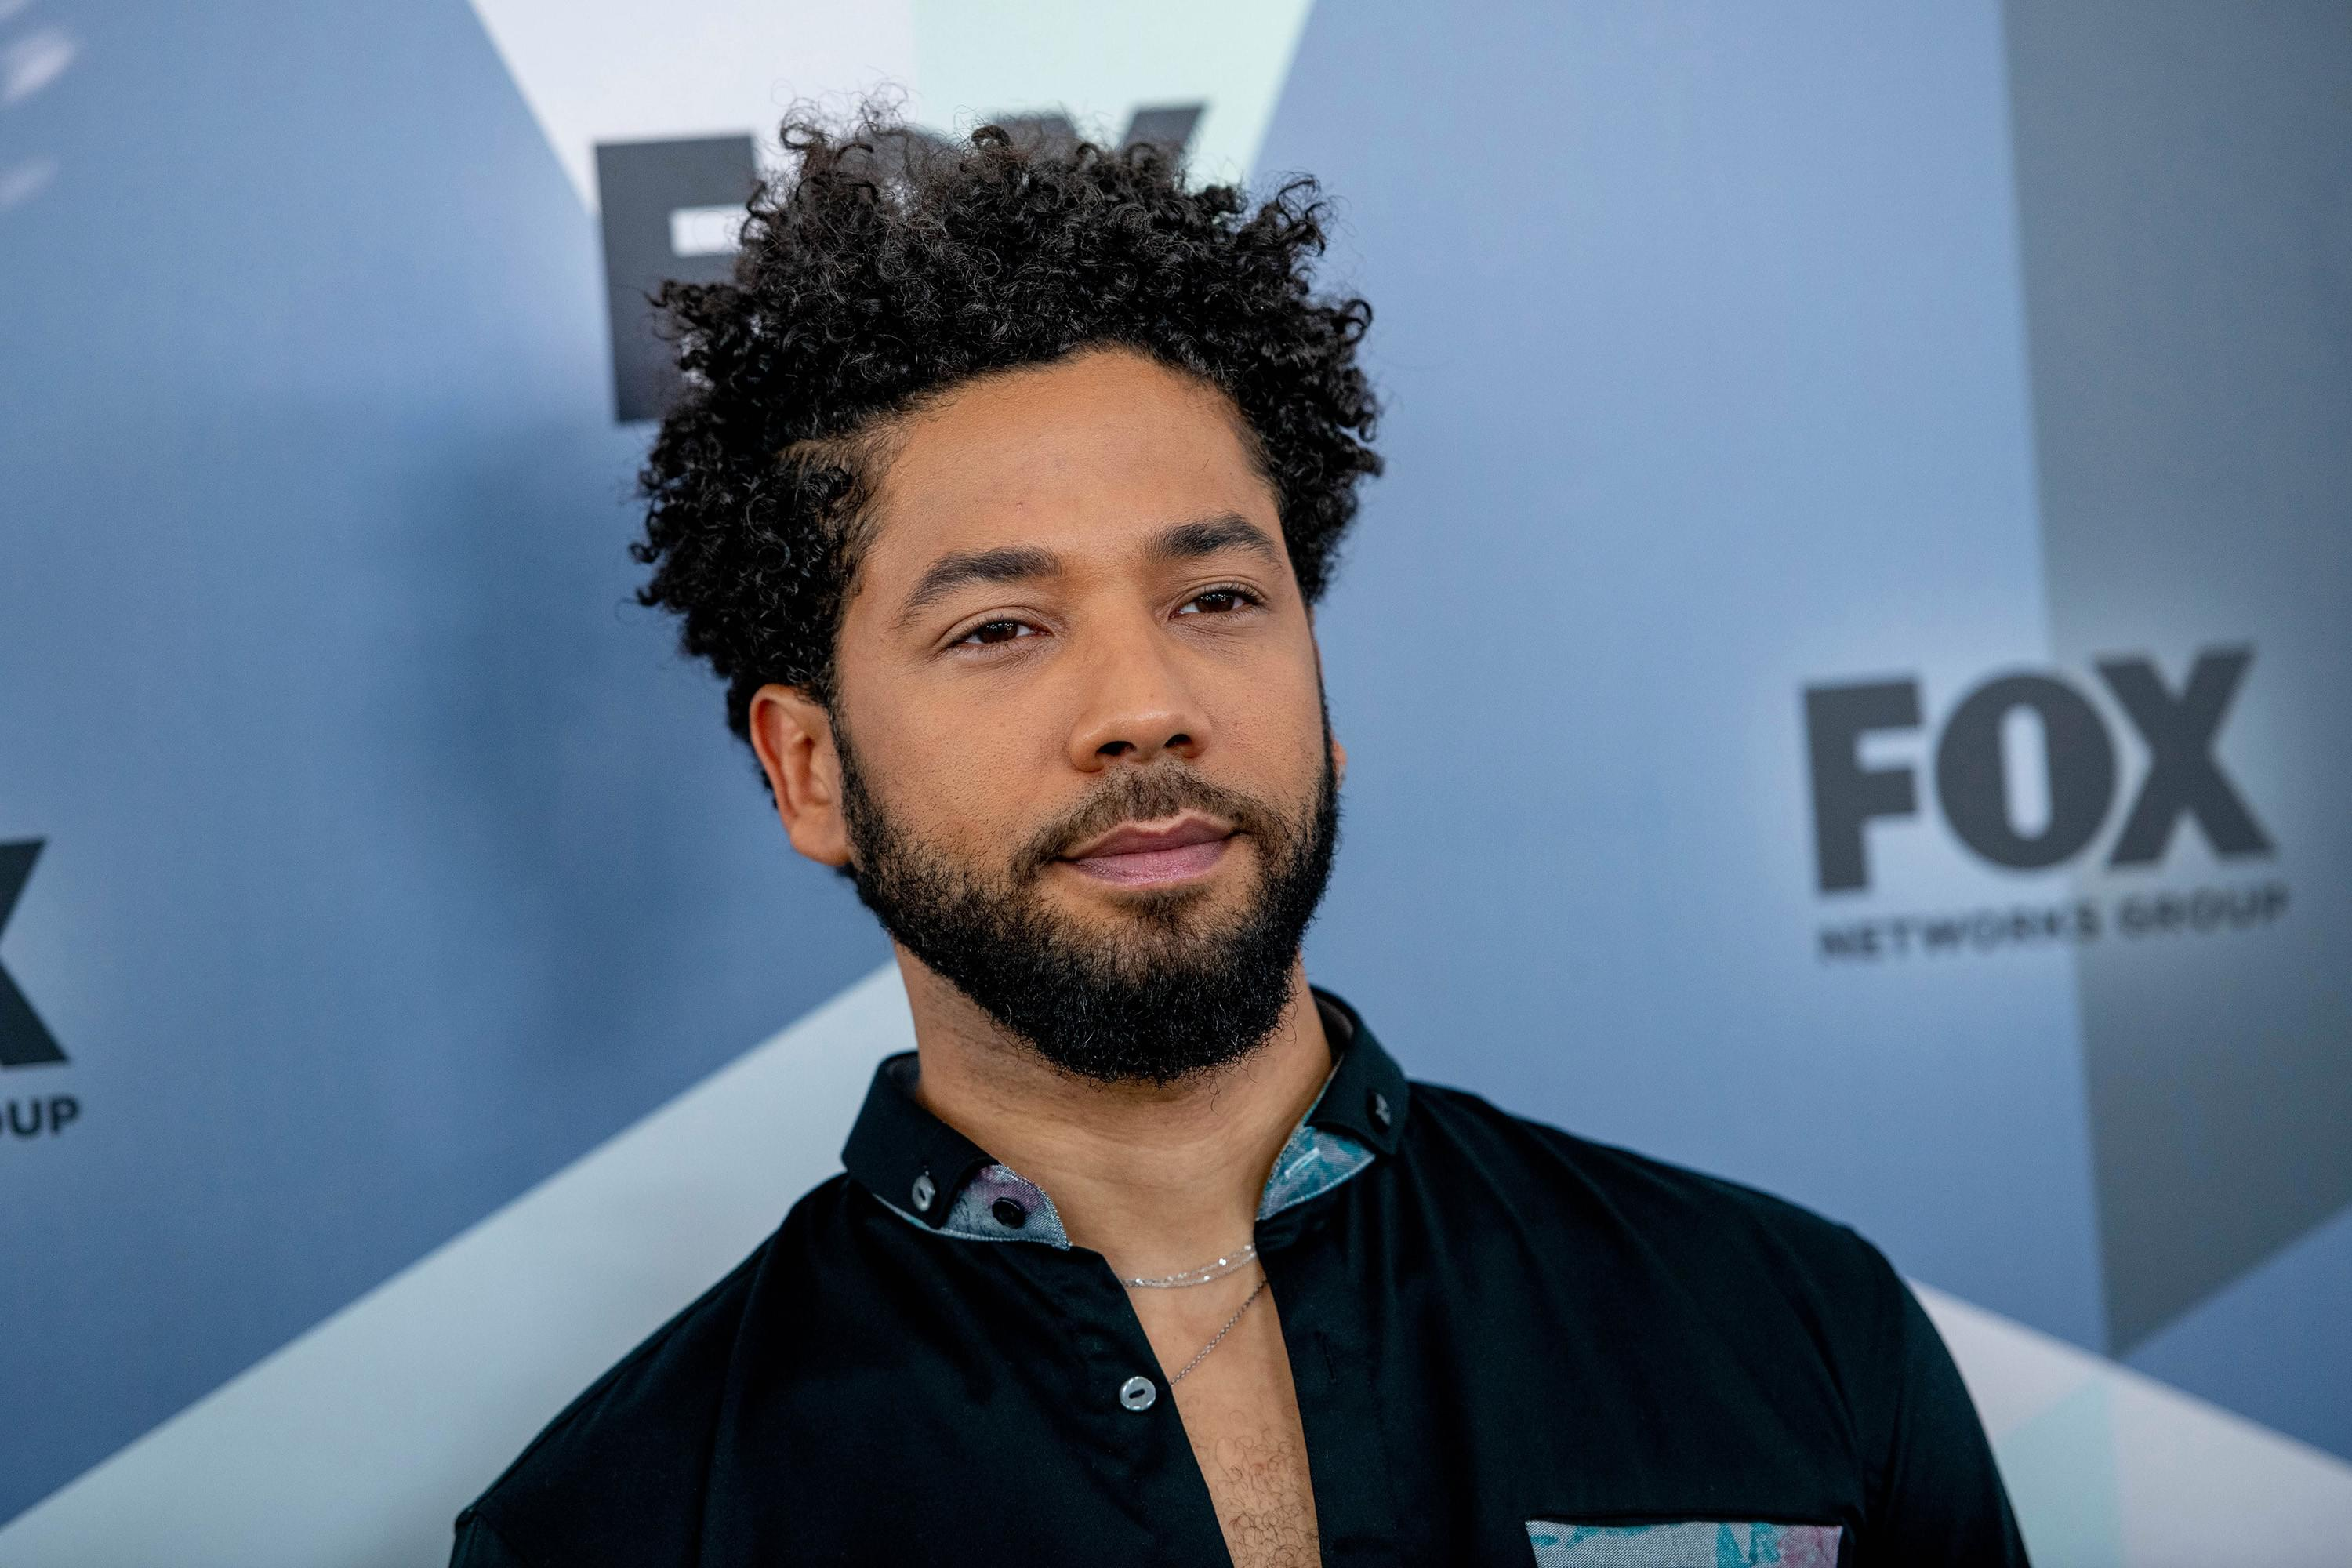 Police release documents in Jussie Smollett alleged hate crime hoax